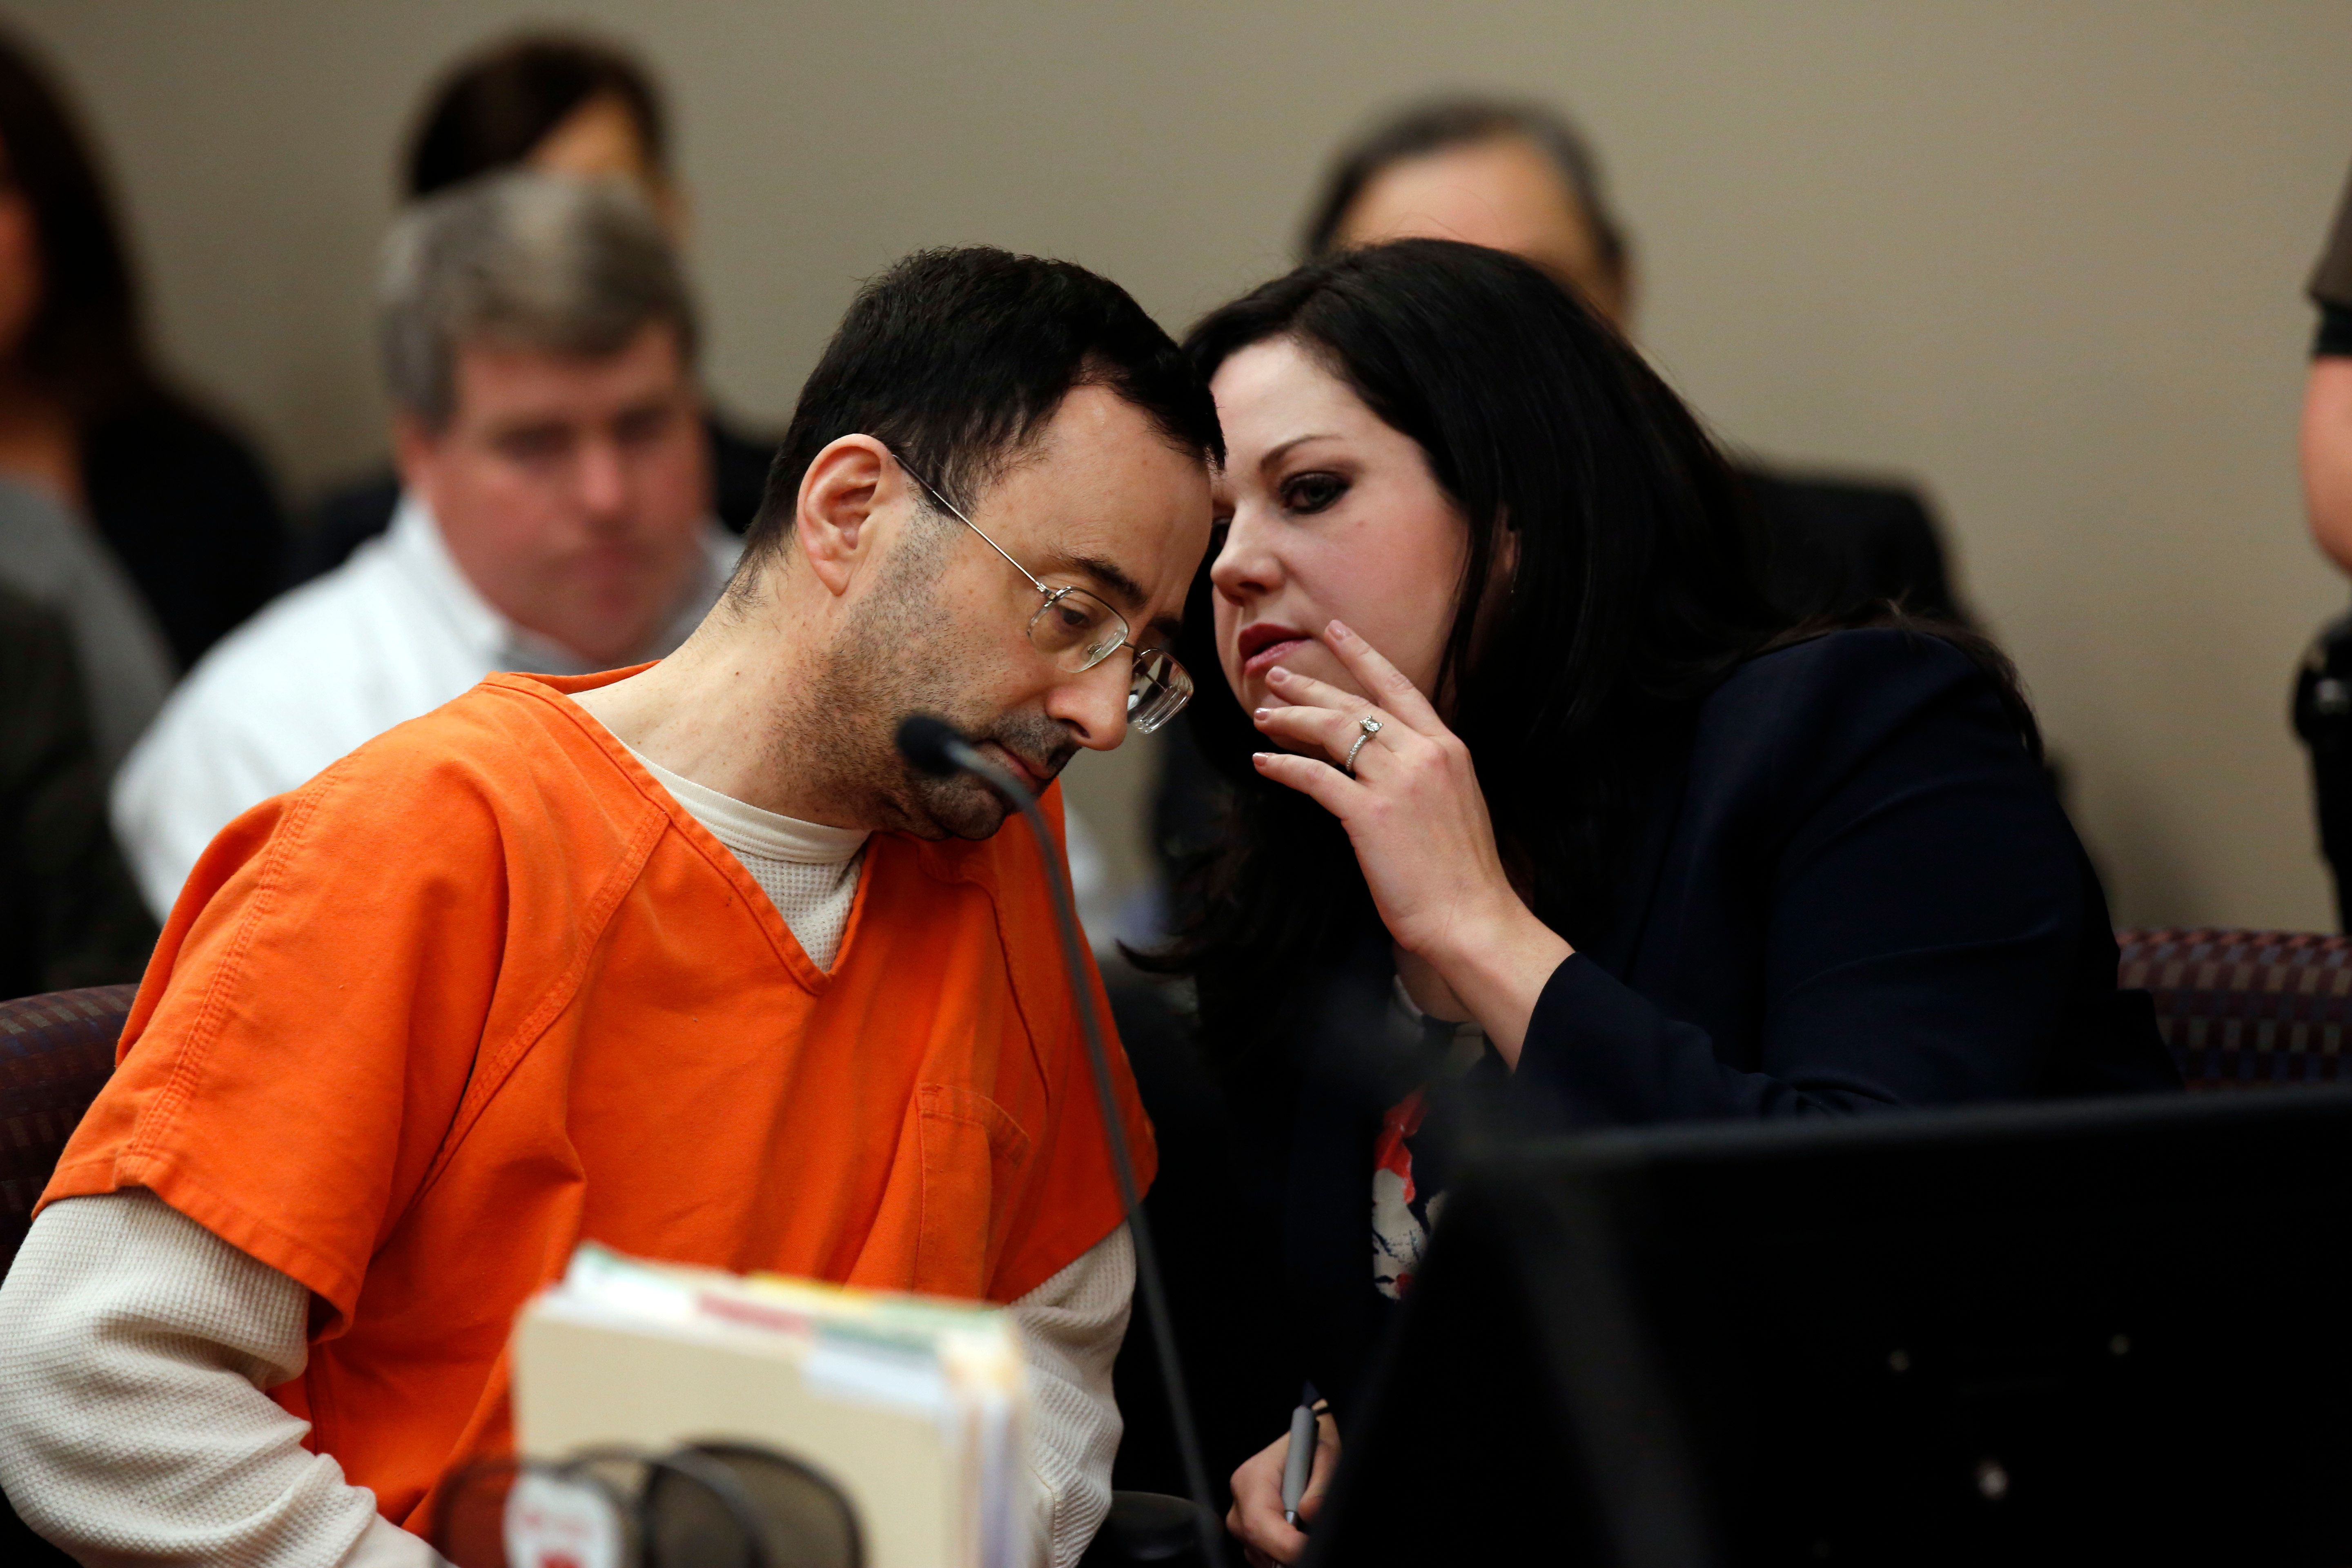 Former Michigan State University and USA Gymnastics doctor Larry Nassar (L) listens to defense attorney Shannon Smith (R) in Ingham County Circuit Court on November 22, 2017 in Lansing, Michigan. Former USA Gymnastics team doctor Lawrence (Larry) Nassar, accused of molesting dozens of female athletes over several decades, on Wednesday pleaded guilty to multiple counts of criminal sexual conduct. Nassar -- who was involved with USA Gymnastics for nearly three decades and worked with the country's gymnasts at four separate Olympic Games -- could face at least 25 years in prison on the charges brought in Michigan.  / AFP PHOTO / JEFF KOWALSKY        (Photo credit should read JEFF KOWALSKY/AFP/Getty Images)